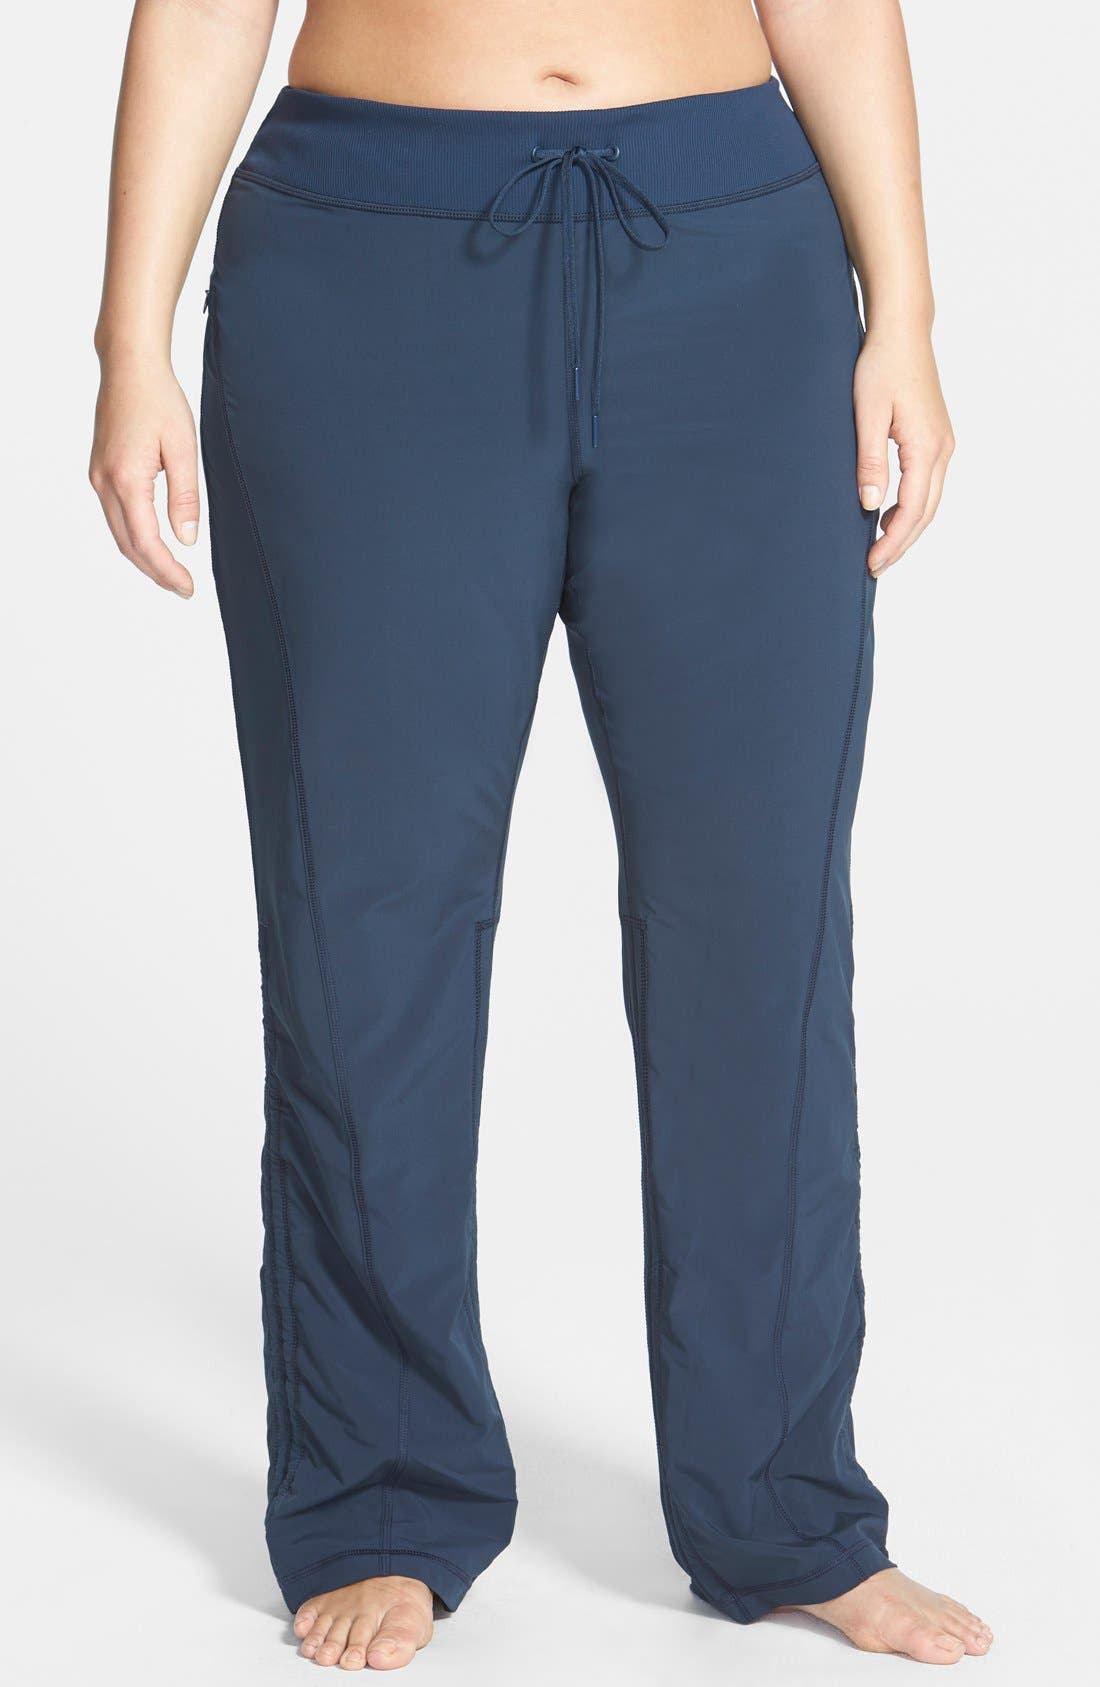 'Work It' Pants,                         Main,                         color, Navy Eclipse